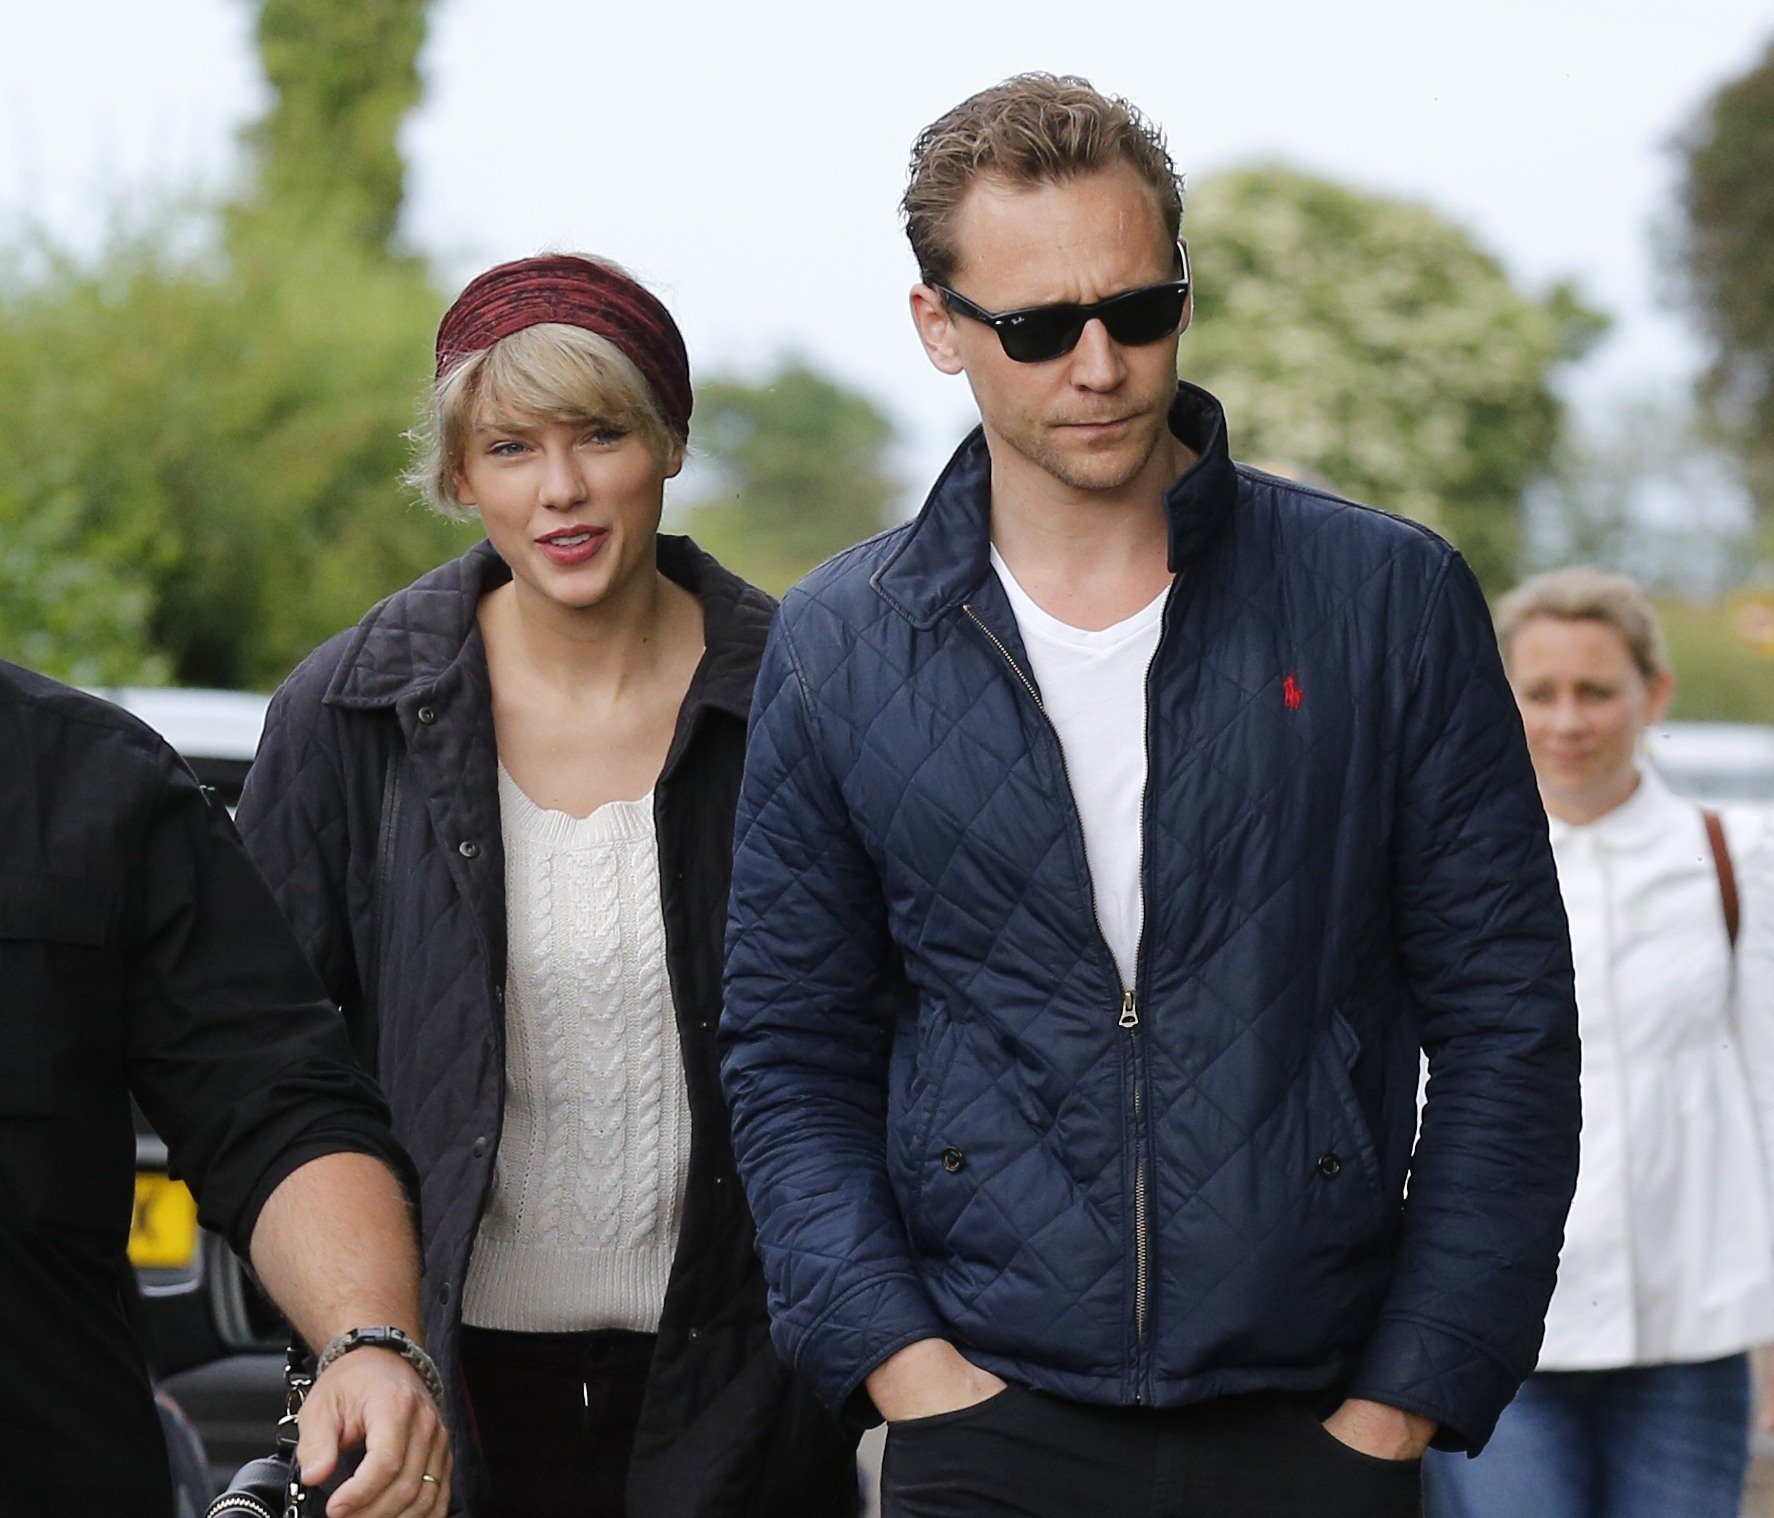 Tom Hiddleston is telling Taylor Swift to shake it off and forget about the haters